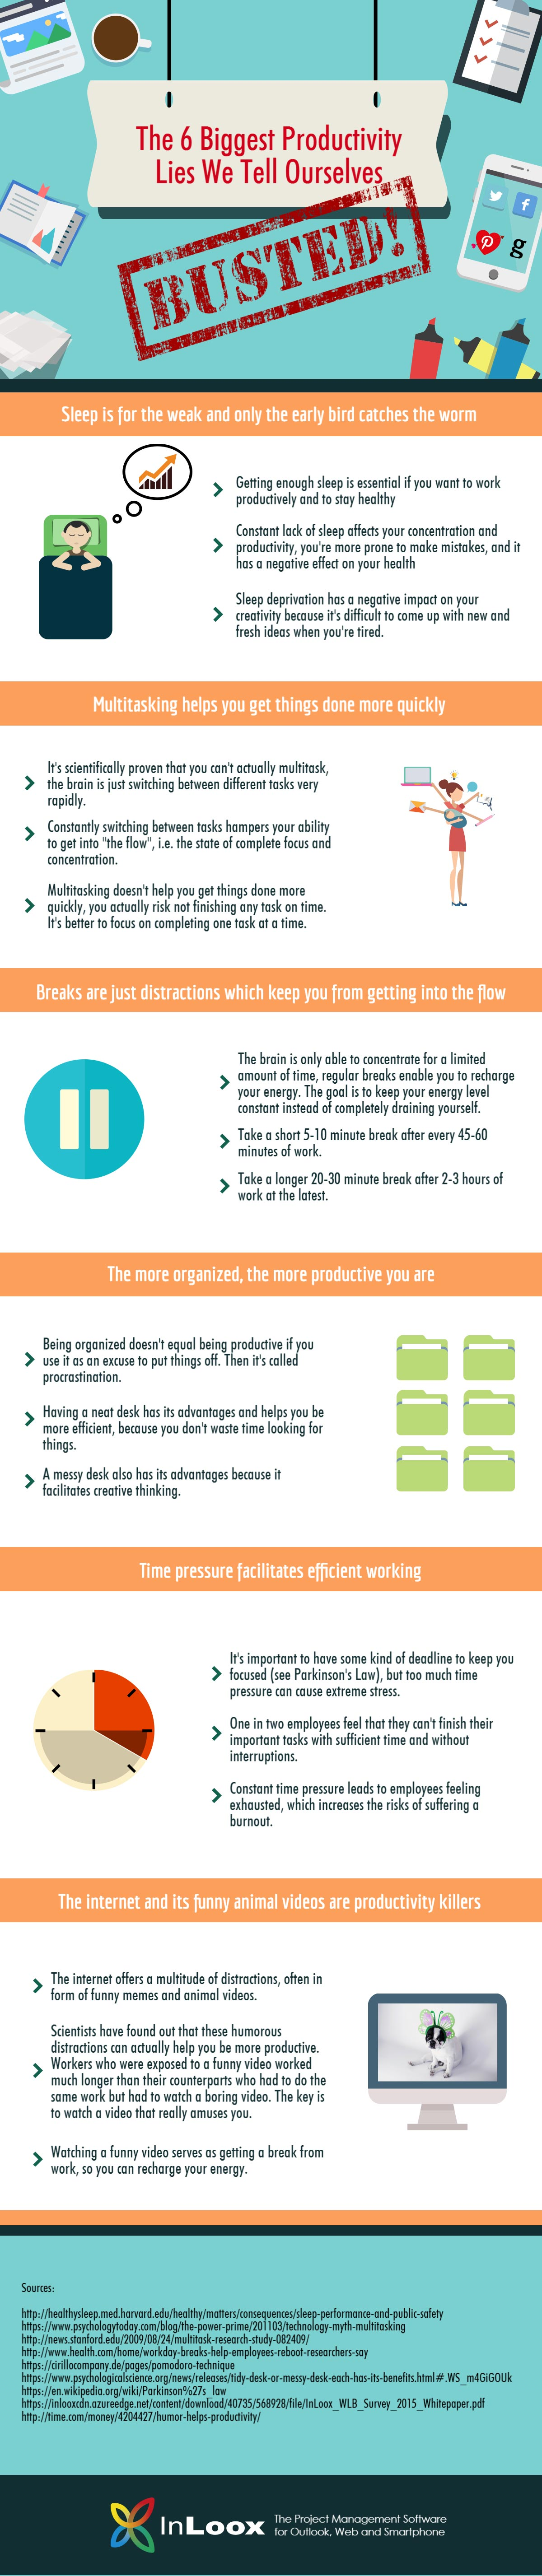 Myths Busted: The 6 Biggest Productivity Lies We Tell Ourselves [INFOGRAPHIC]